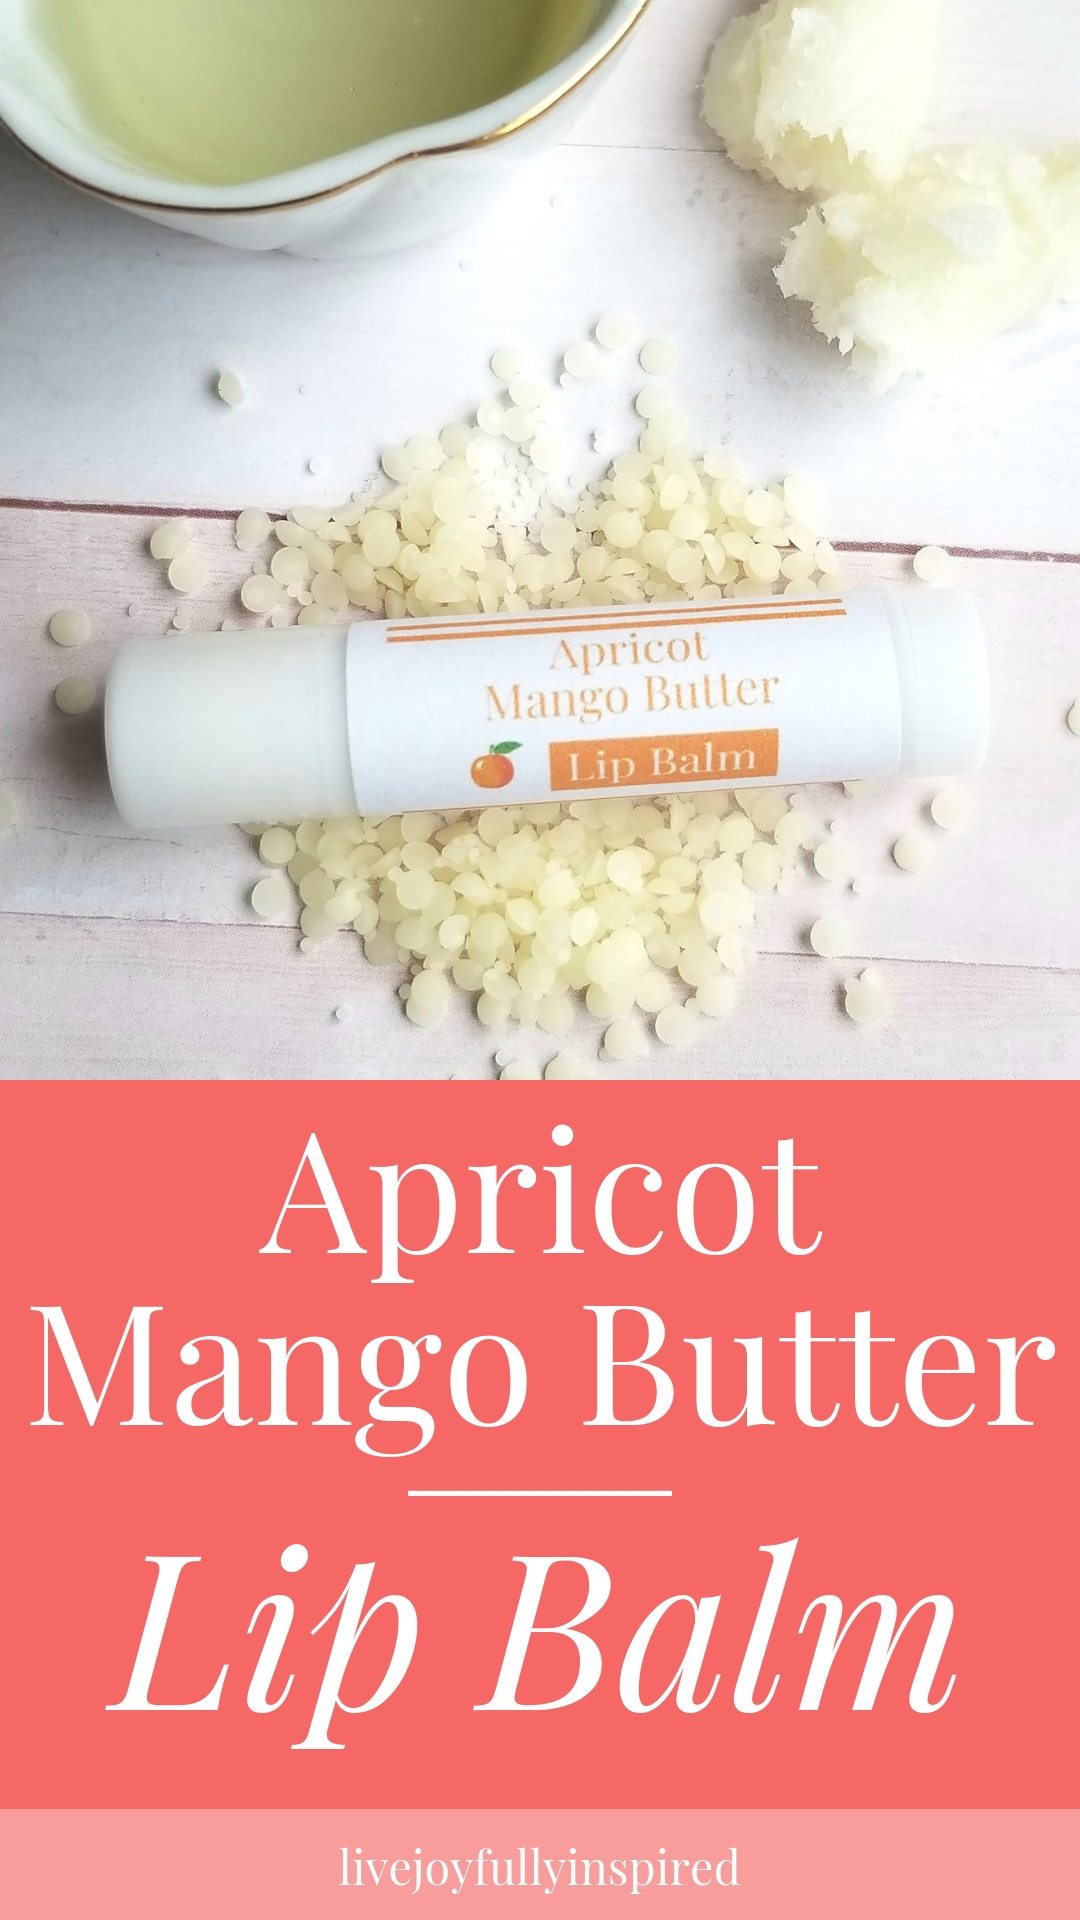 Apricot mango Butter Lip Balm. When it comes to our lips, we want them to be soft, moisturized and young looking. This lip balm contains some super awesome nutrient rich ingredients to do ALL those things. It's a beautifully scented, smooth feeling lip balm. #lipbalm #mangobutter #essentialoils